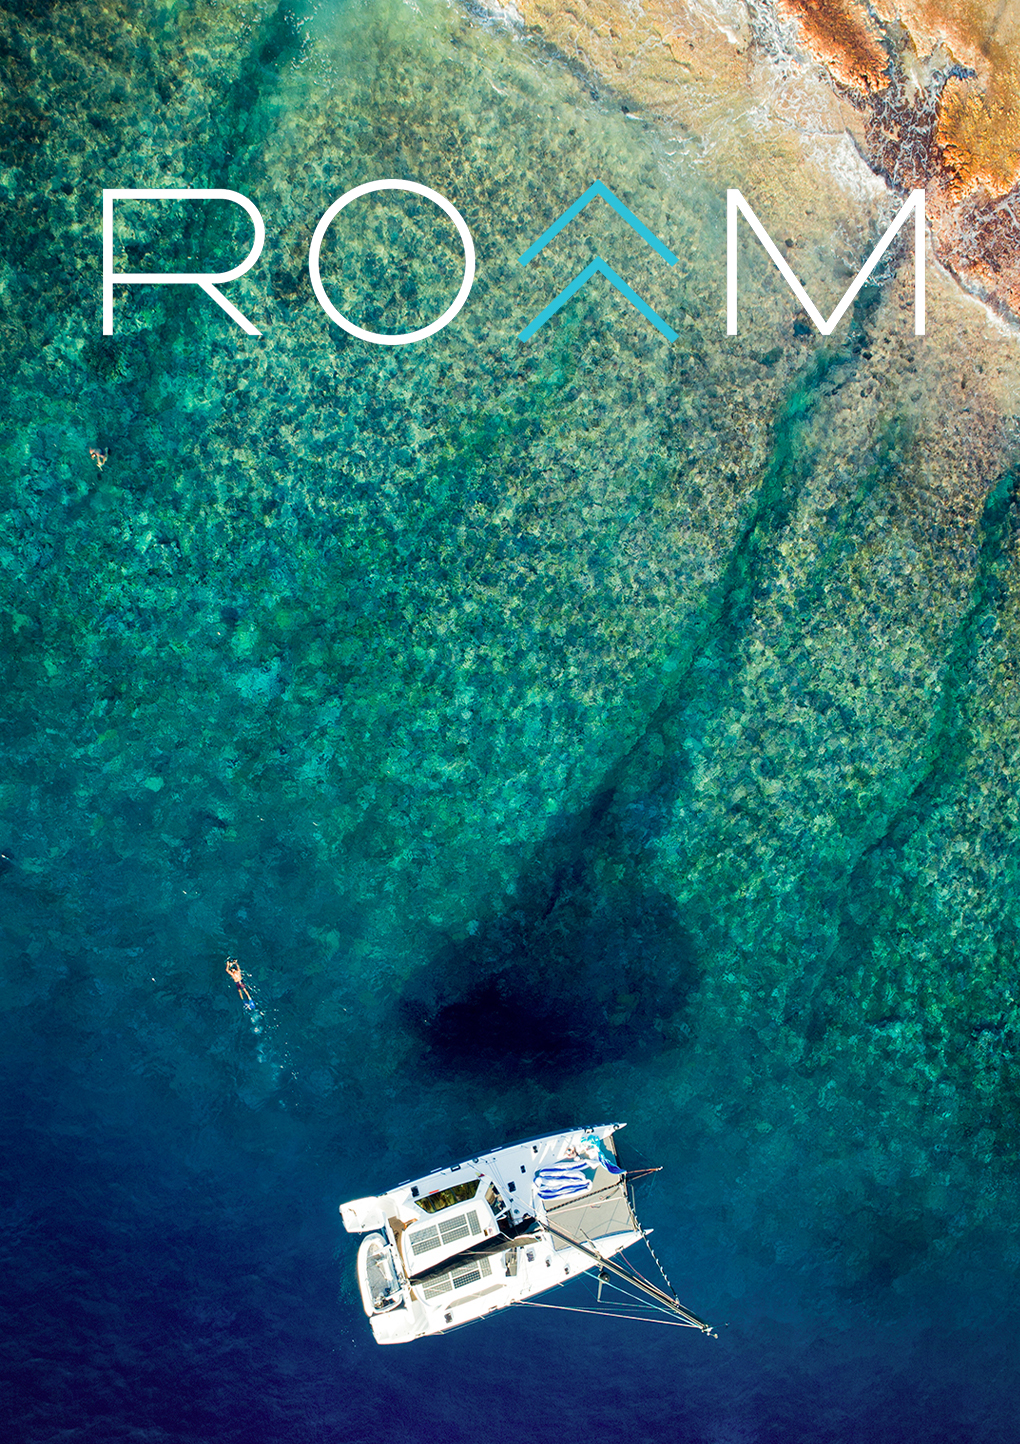 Stories that make a vast world seem intimate - Roam seeks out content on every corner of the globe, broadcasting adventure into the pockets of people everywhere.  Visit ROAM ➝